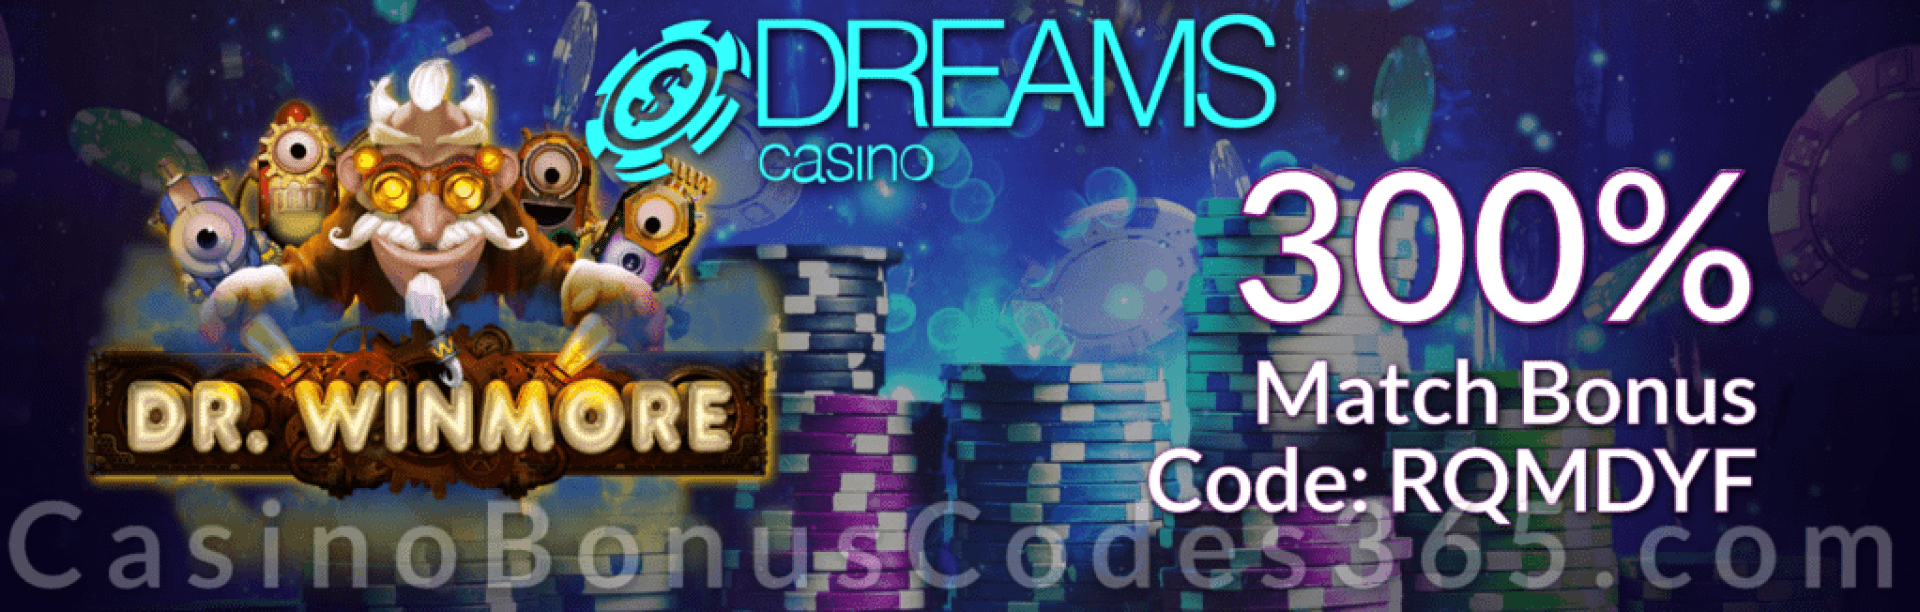 Dreams Casino 300% Match New RTG Game Dr. Winmore Special Offer